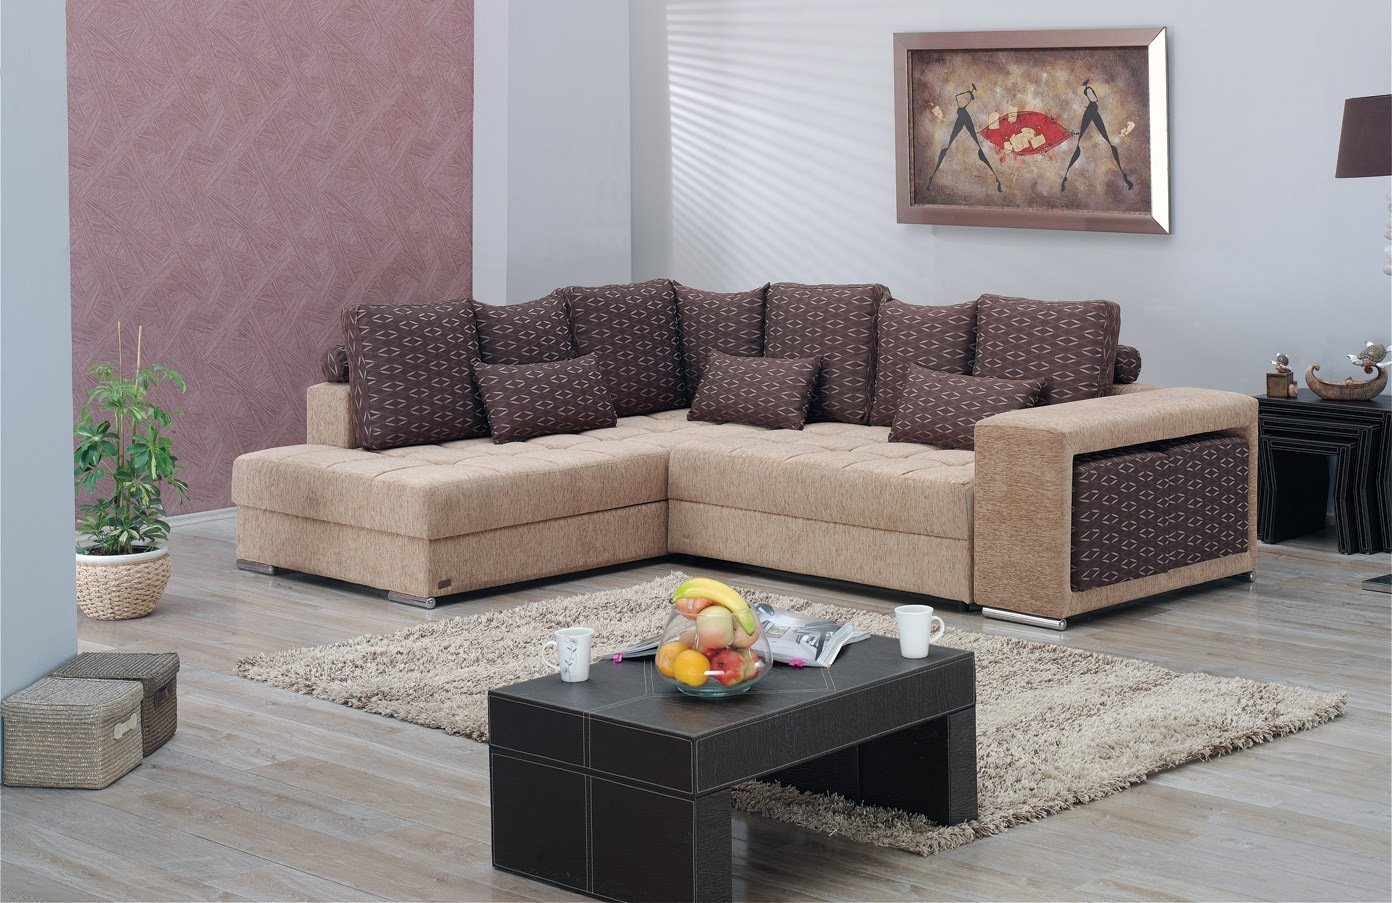 Los Angeles Sectional Sofa Setempire Furniture Usa Pertaining To Famous Los Angeles Sectional Sofas (View 7 of 15)